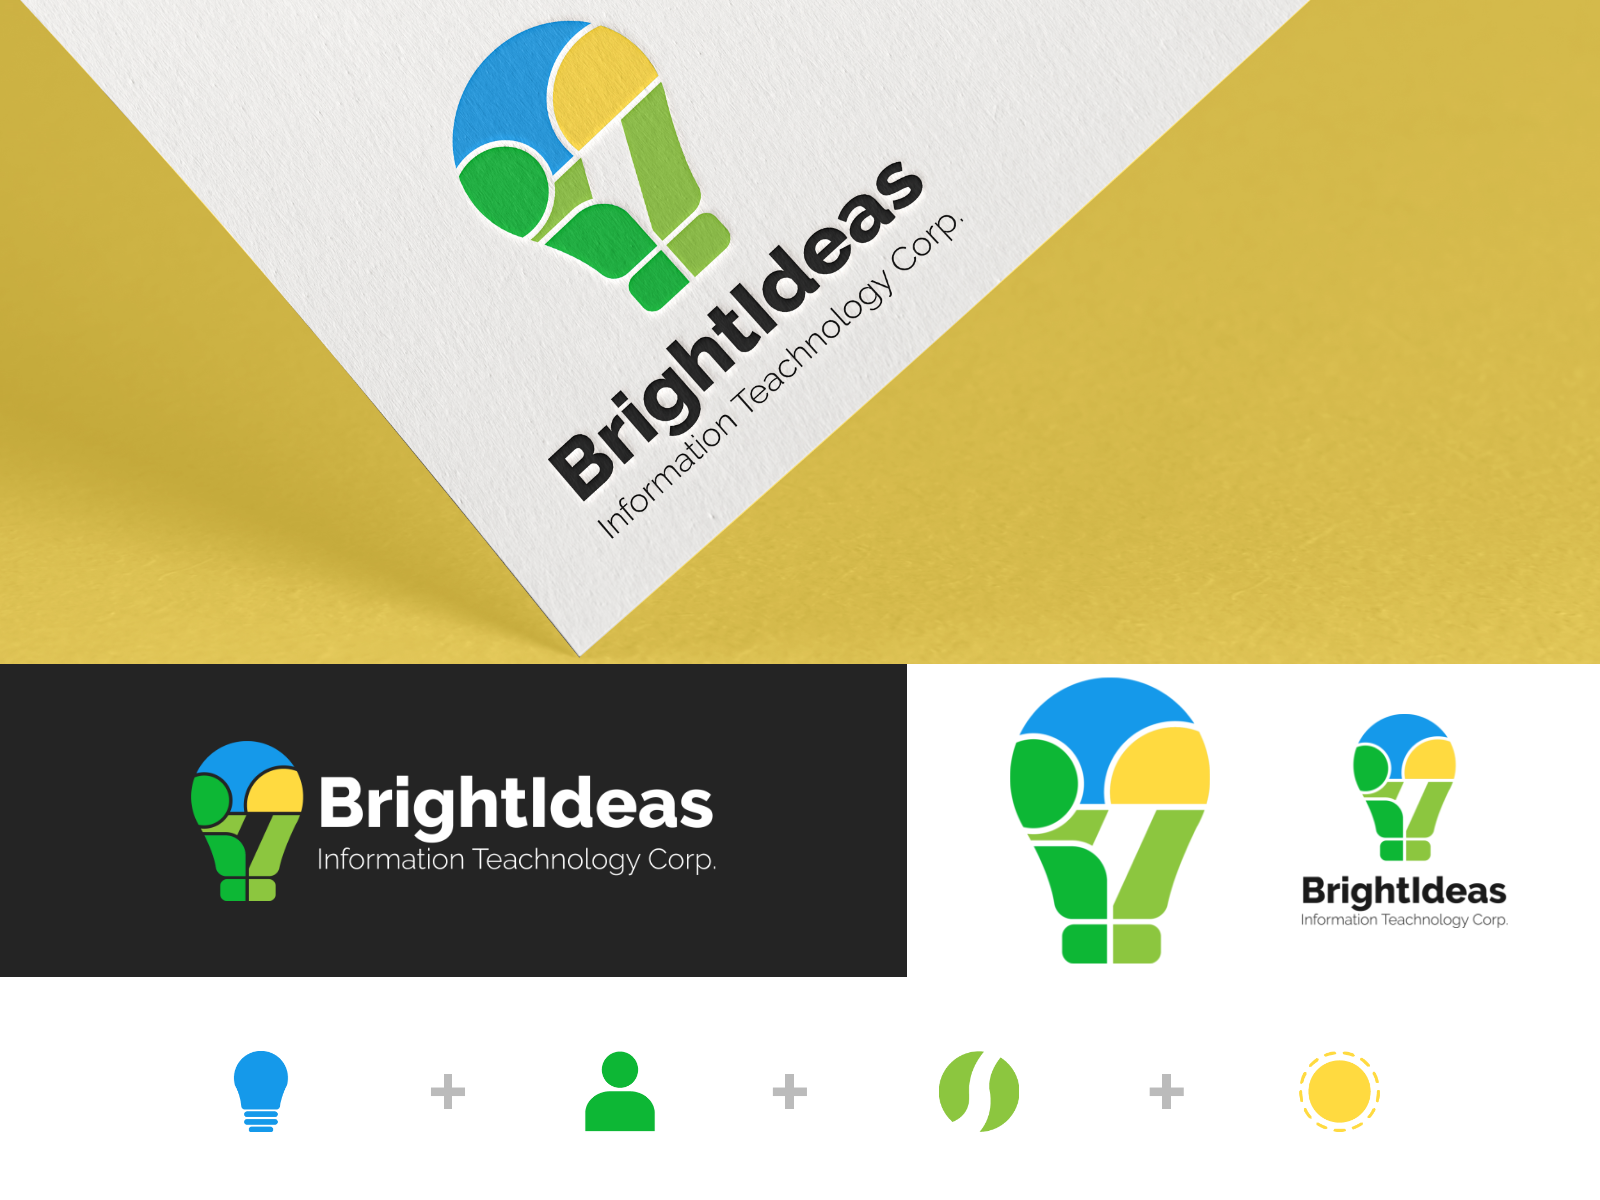 BrightIdeas Logo 2020 by Bea Joy C. Javier